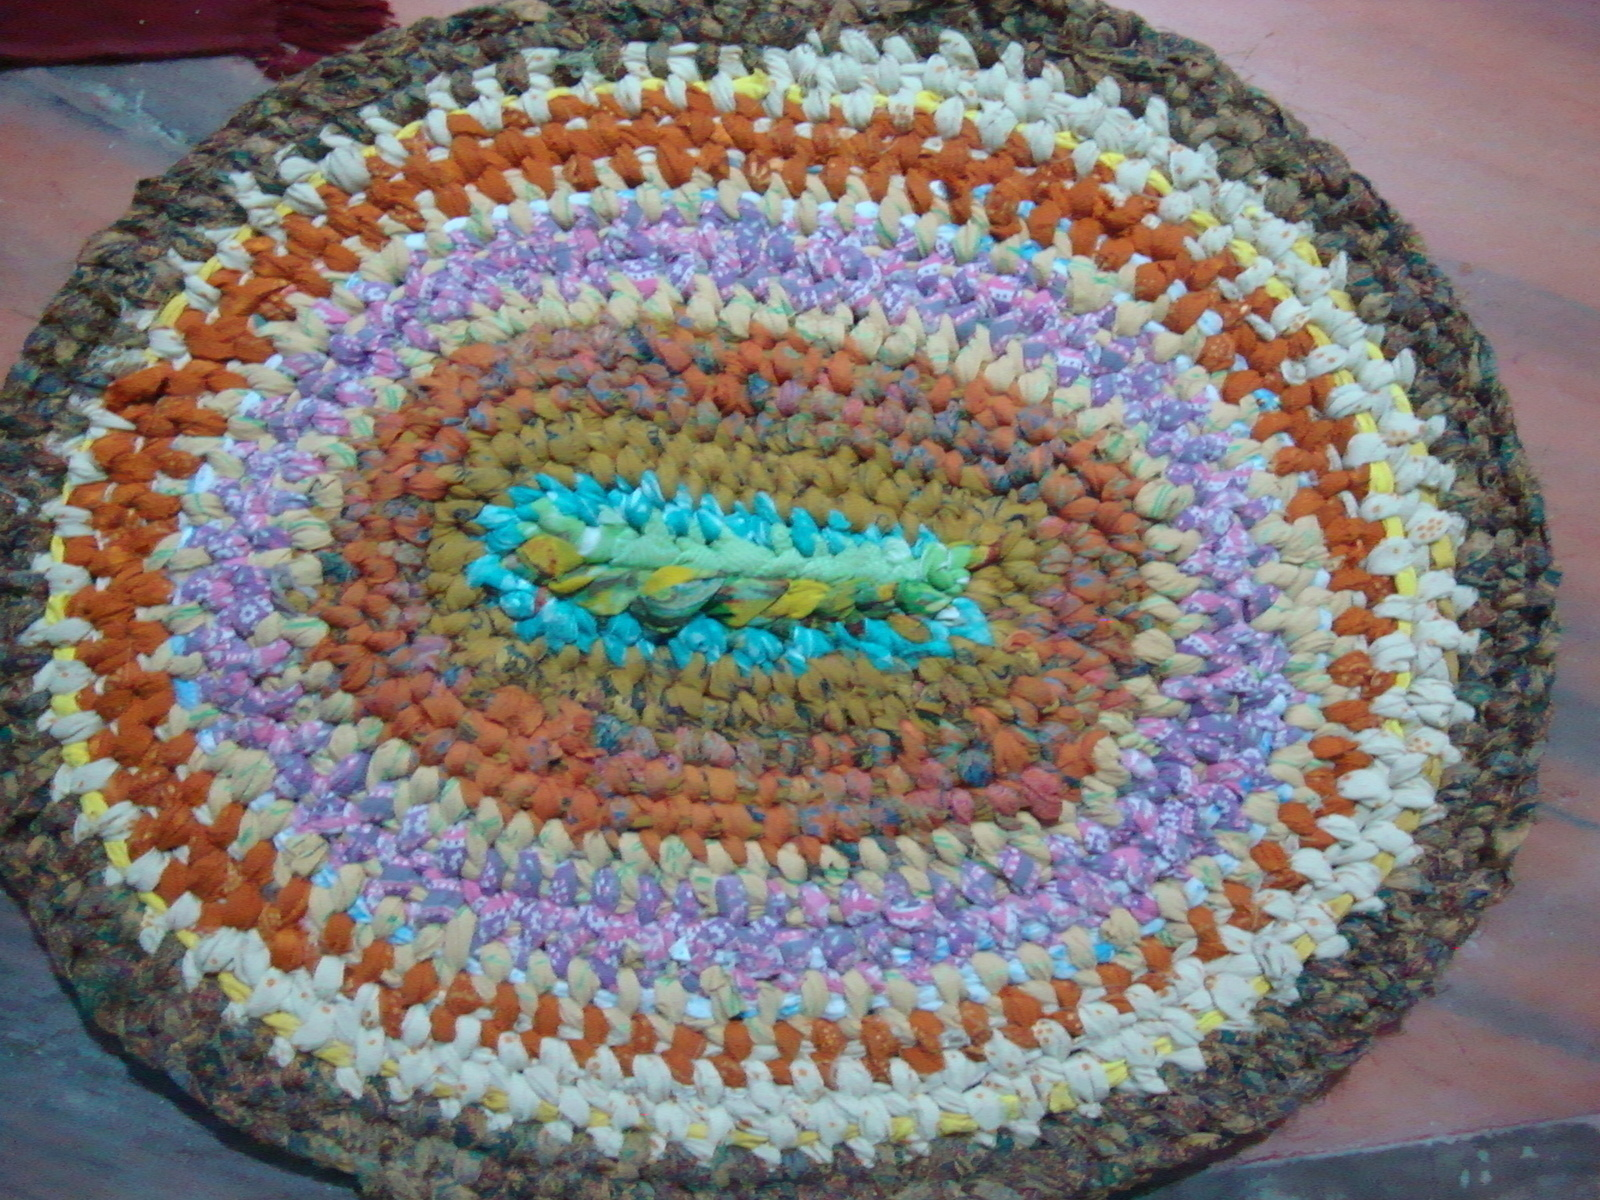 how to make a bean bag chair out of old clothes camping accessories cloth rug  rag decorating needlework and